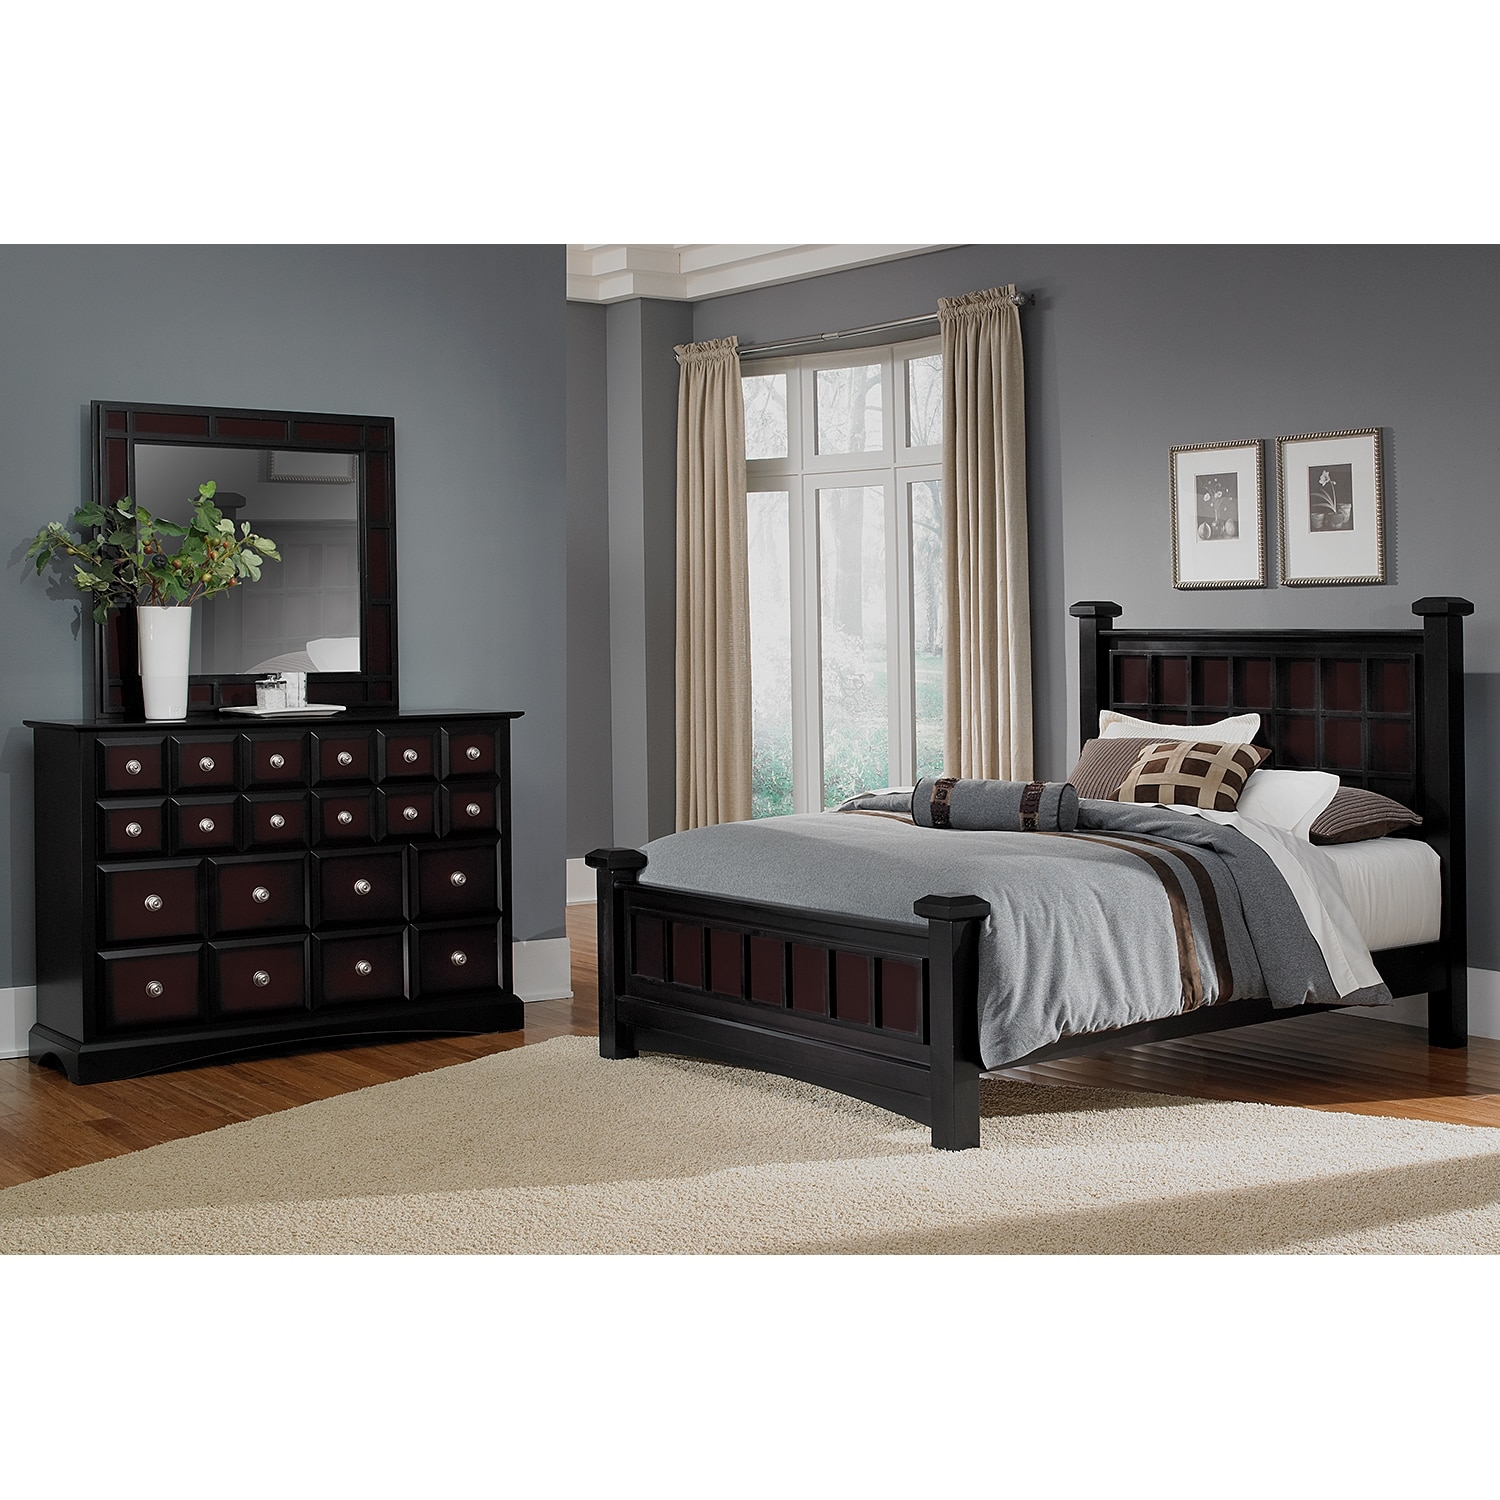 Winchester 5 pc king bedroom value city furniture for Bedroom sets with mattress included